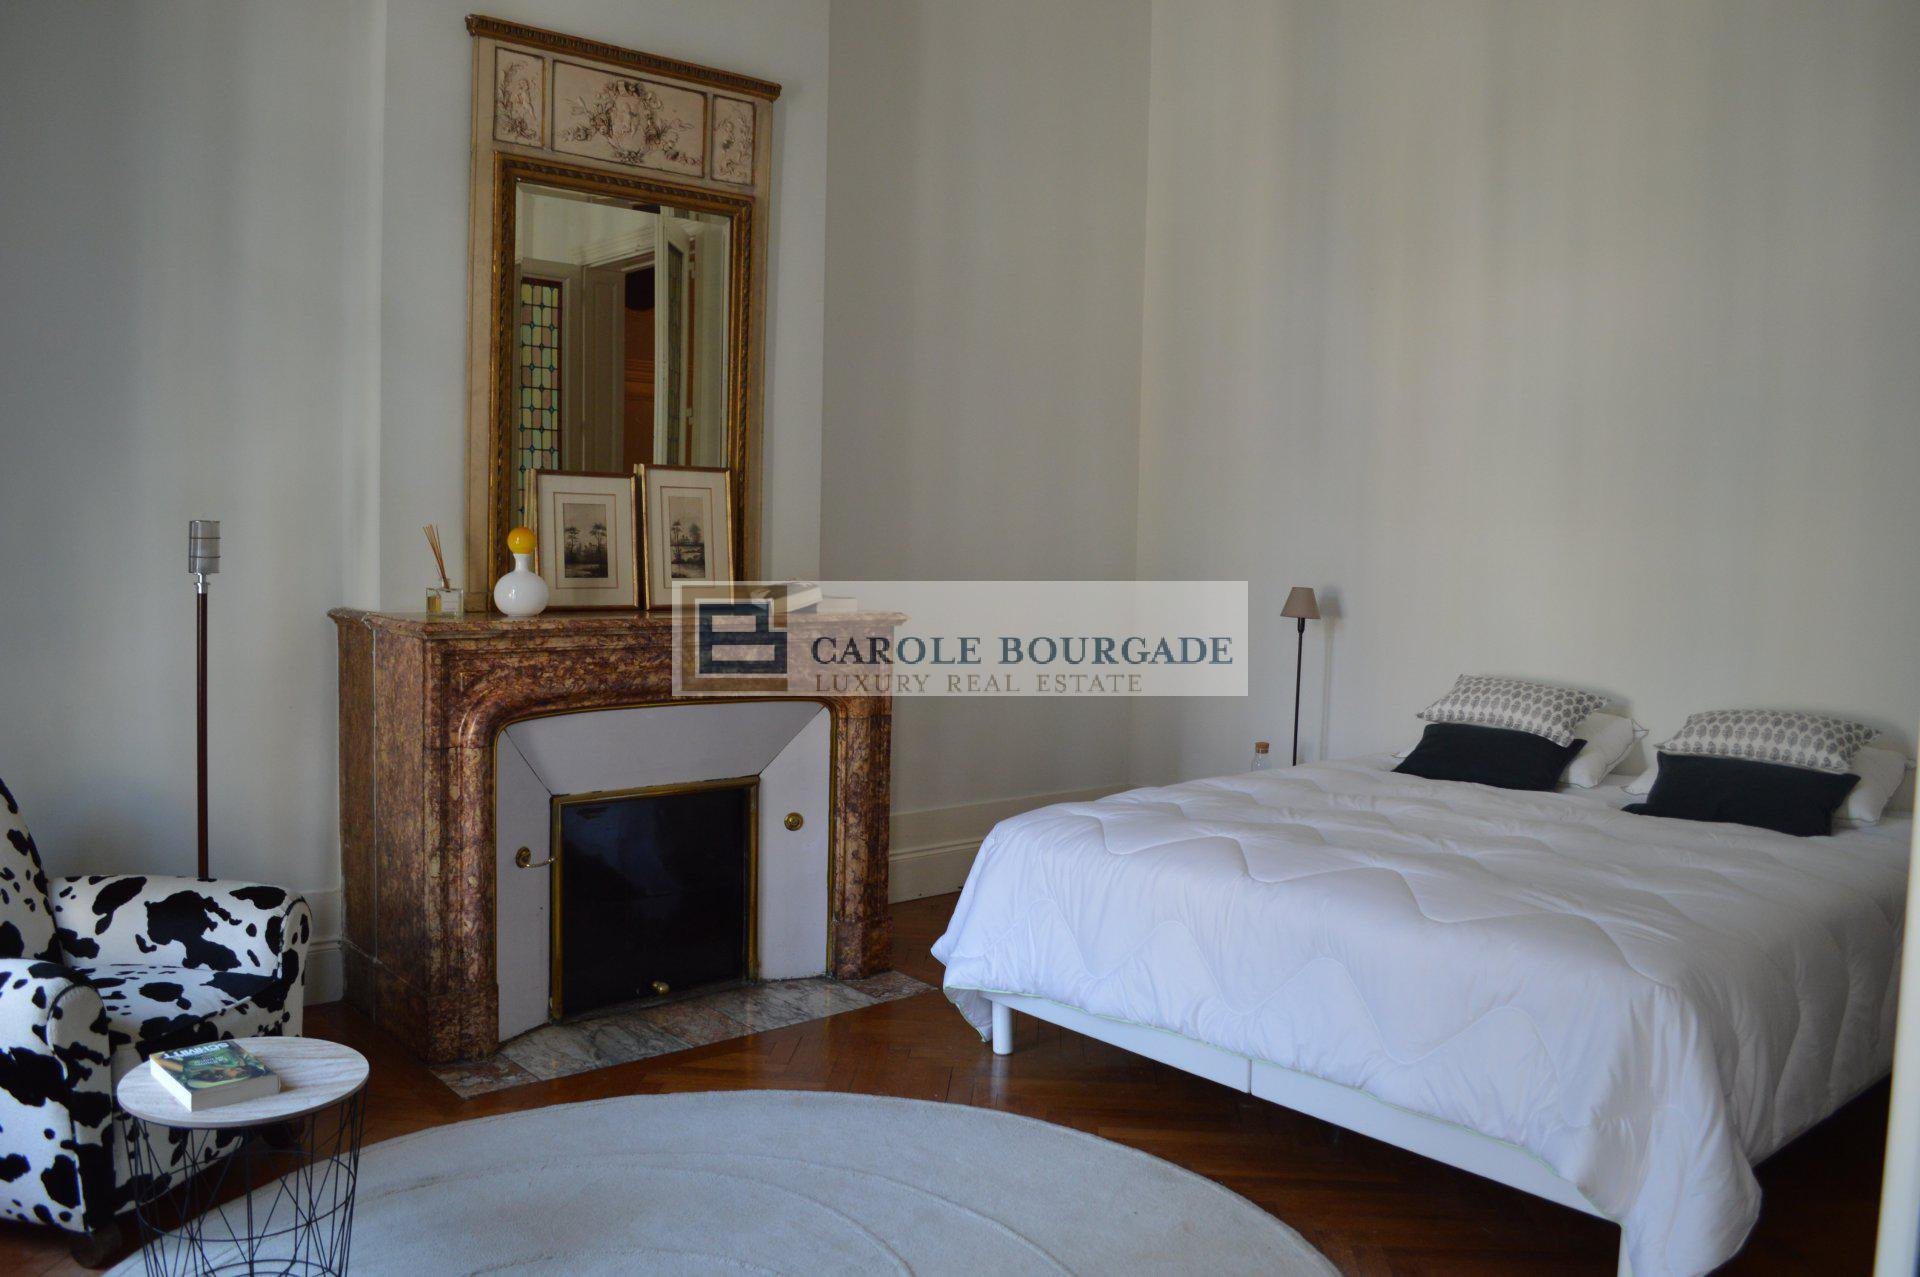 MAGNIFICENT FURNISHED PROPERTY TO RENT WITH GARDEN AND POOL IN BORDEAUX